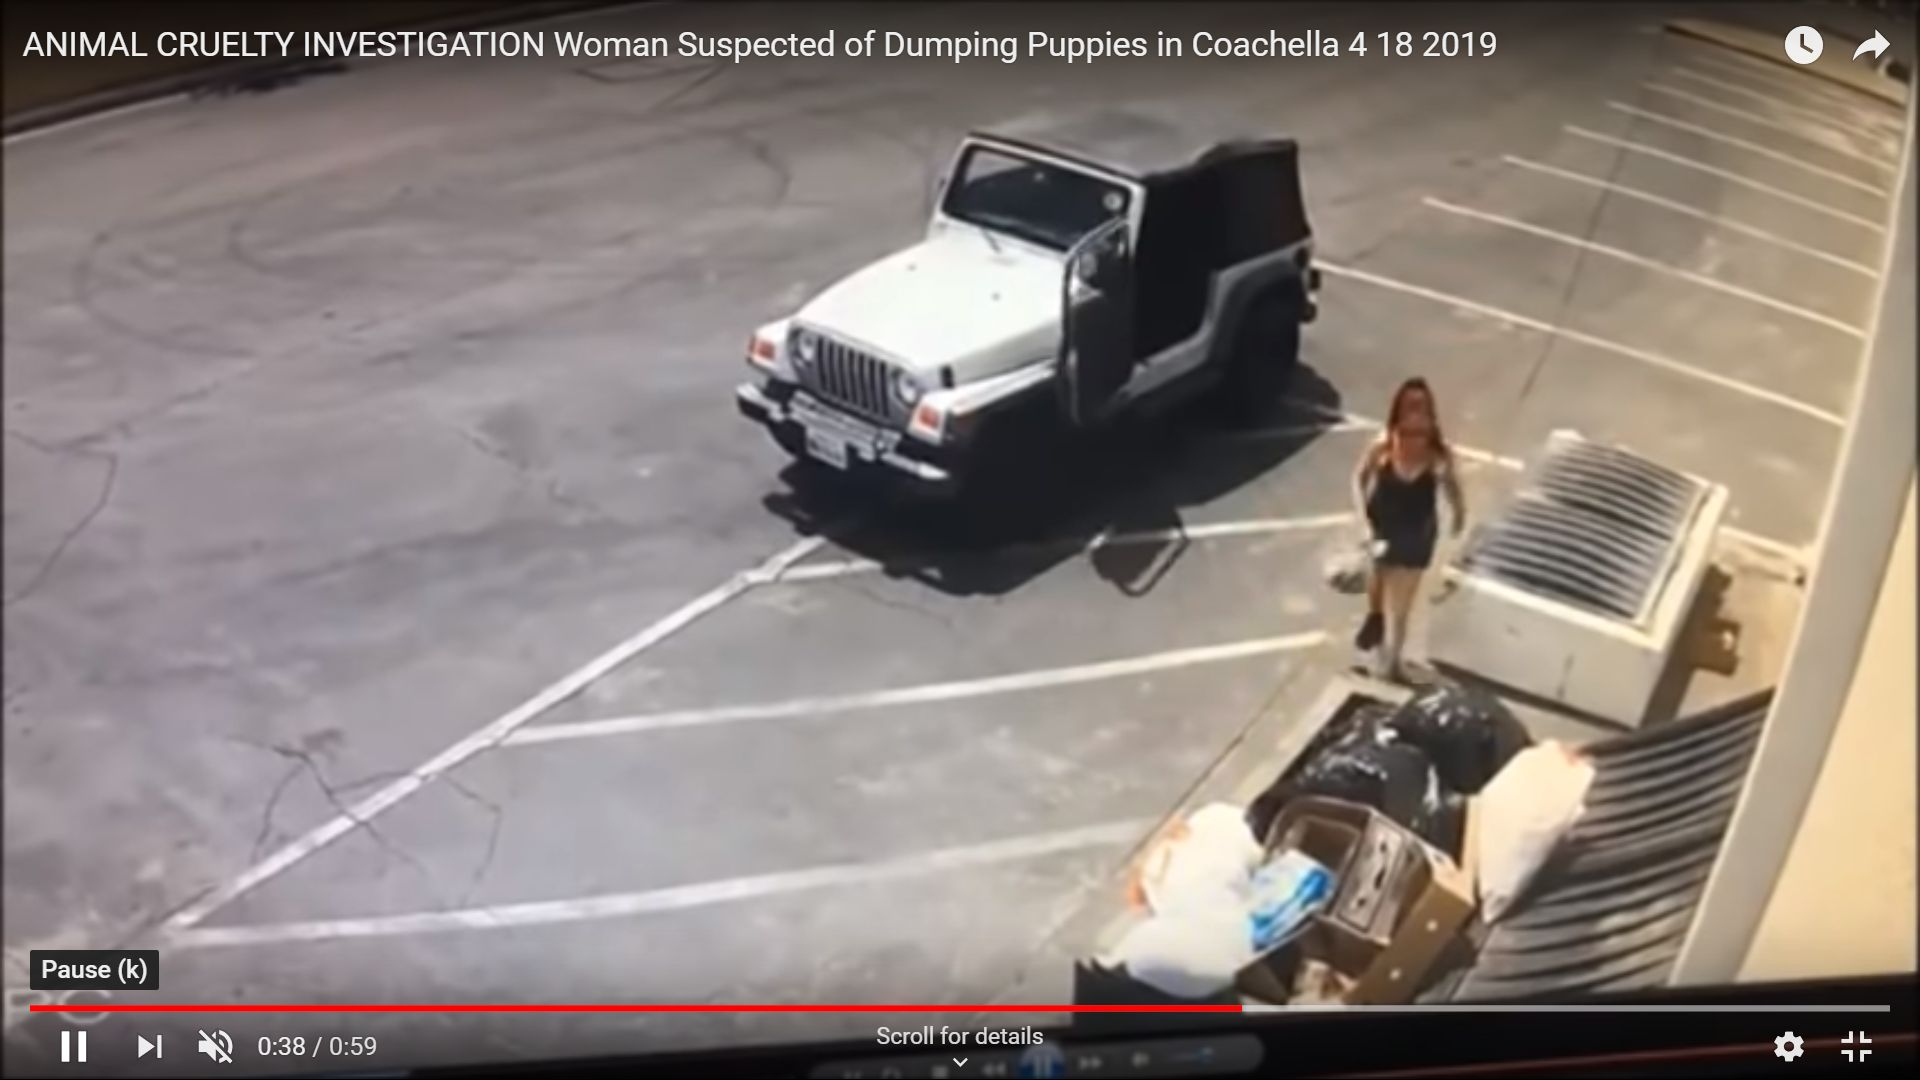 A woman is wanted by authorities for allegedly dumping a bag of puppies by a dumpster